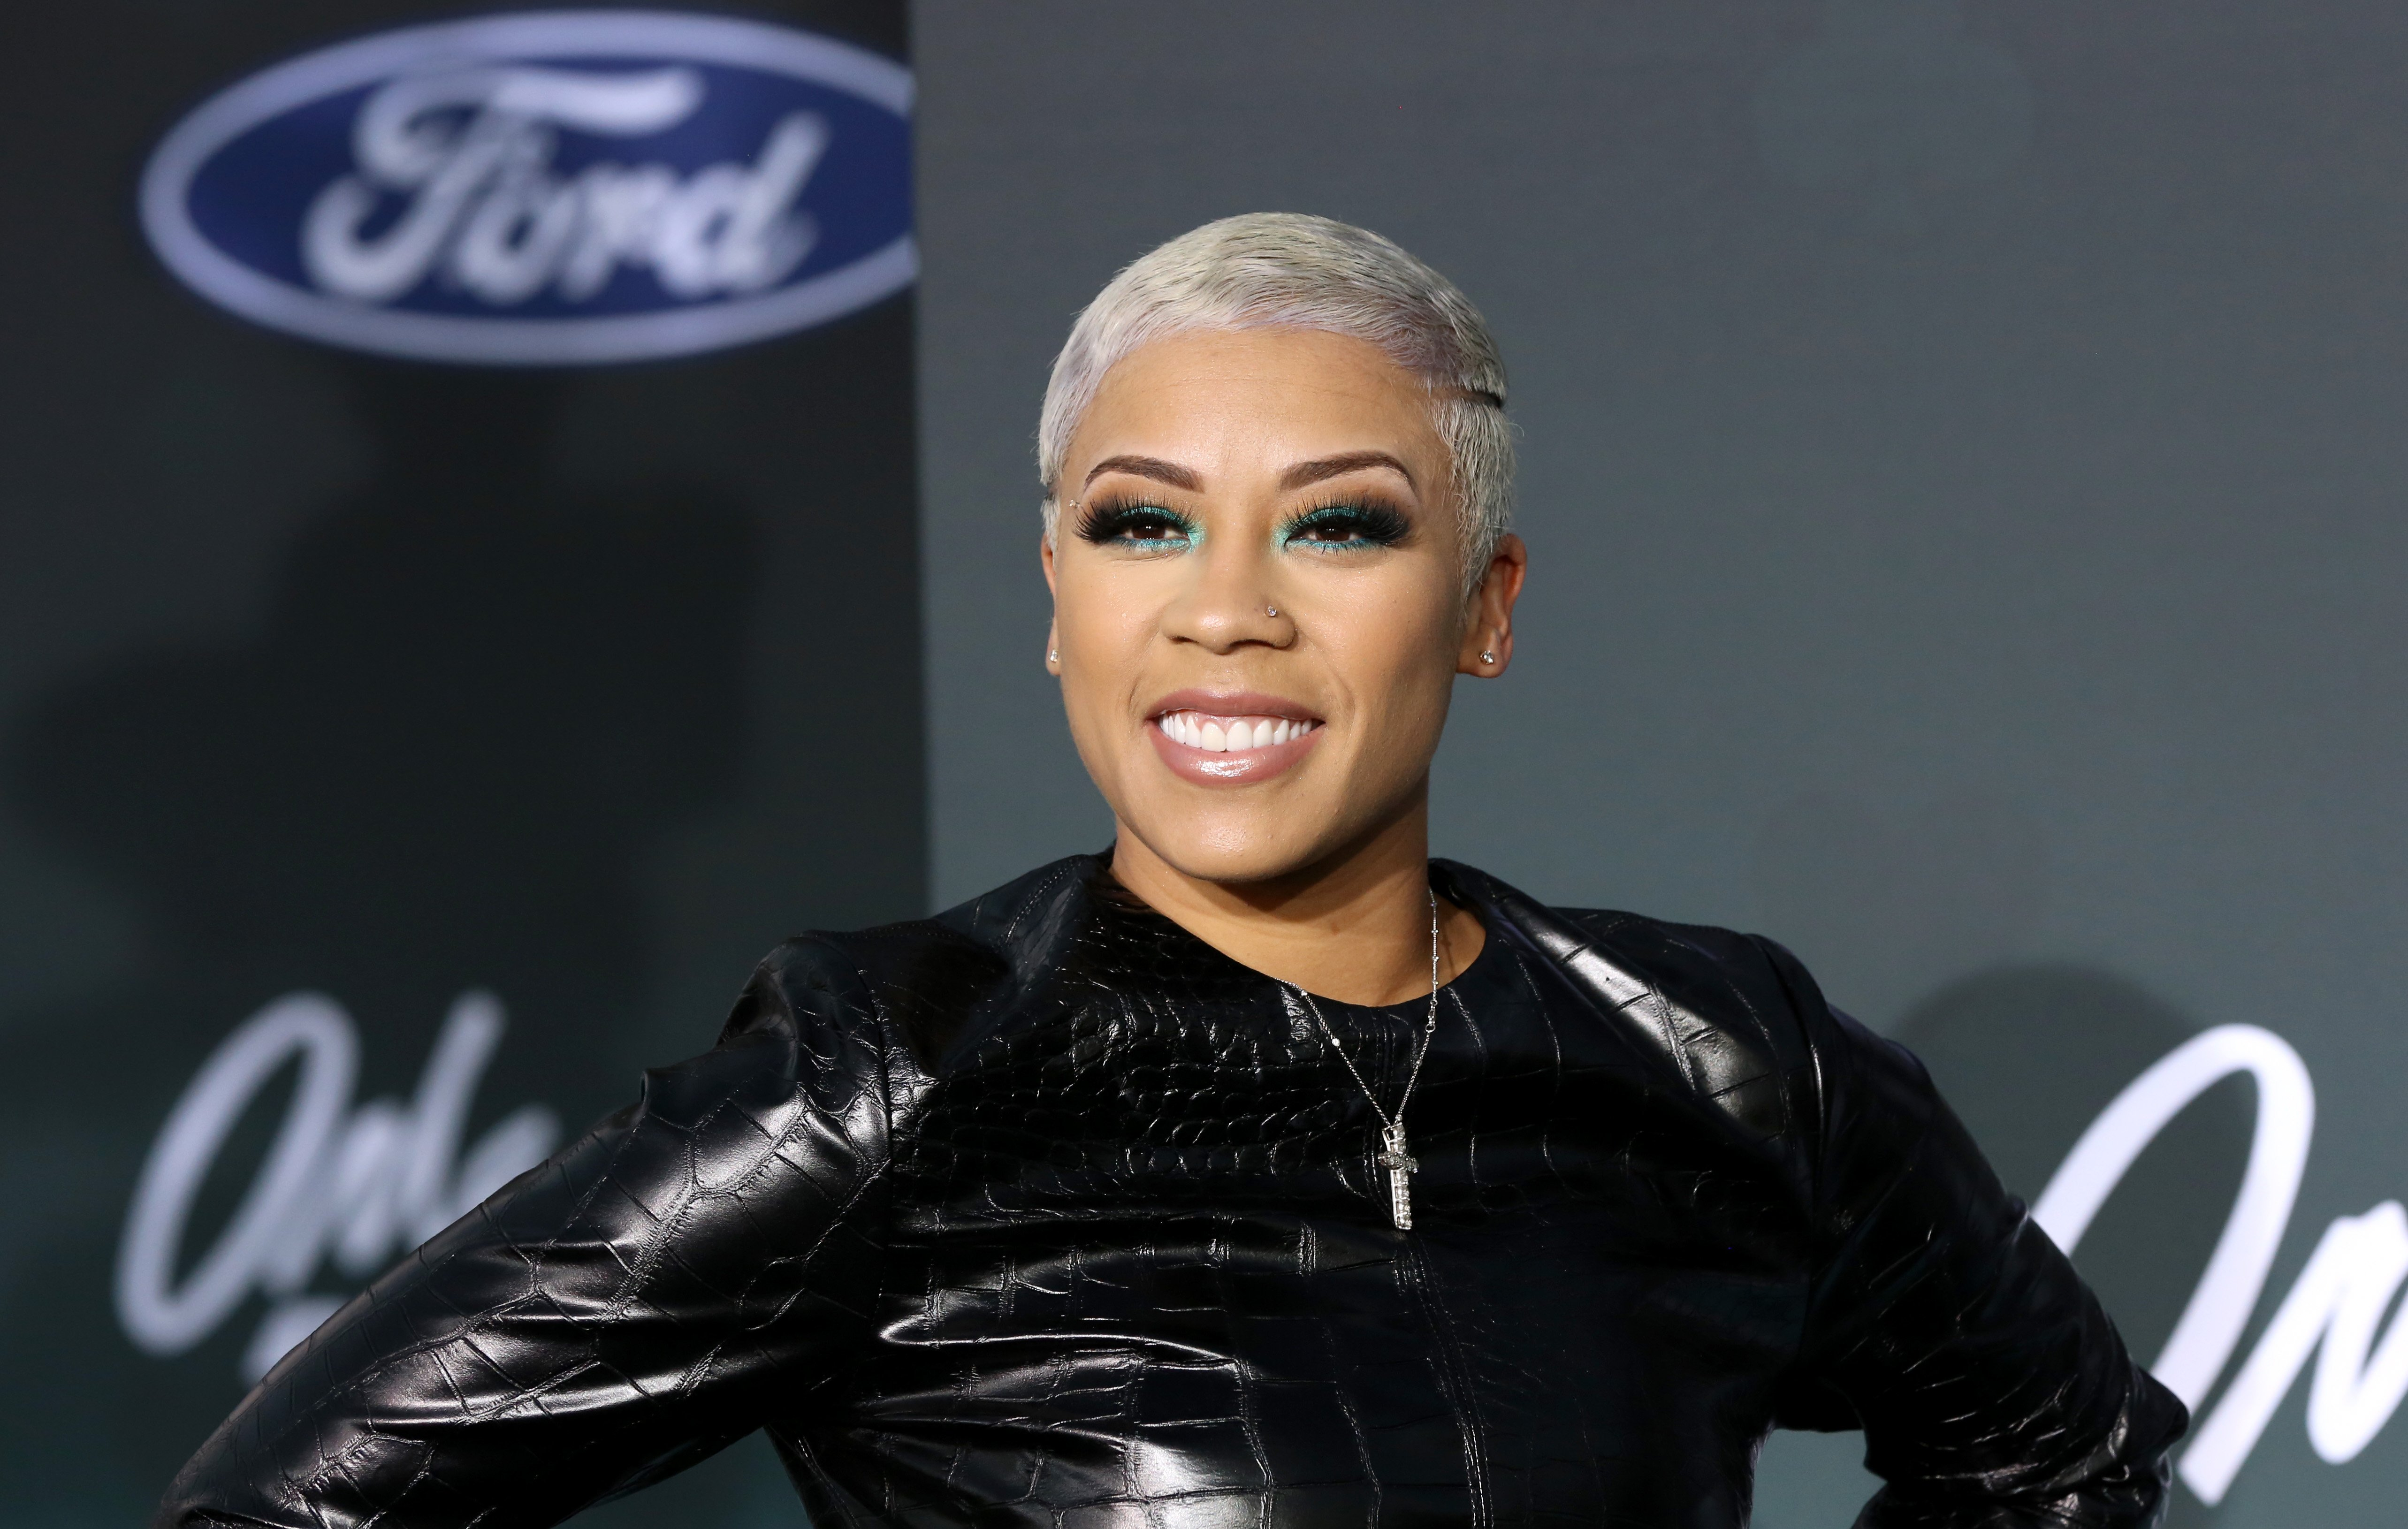 Keyshia Cole attending the 2019 Soul Train Awards in Las Vegas. | Photo: Getty Images